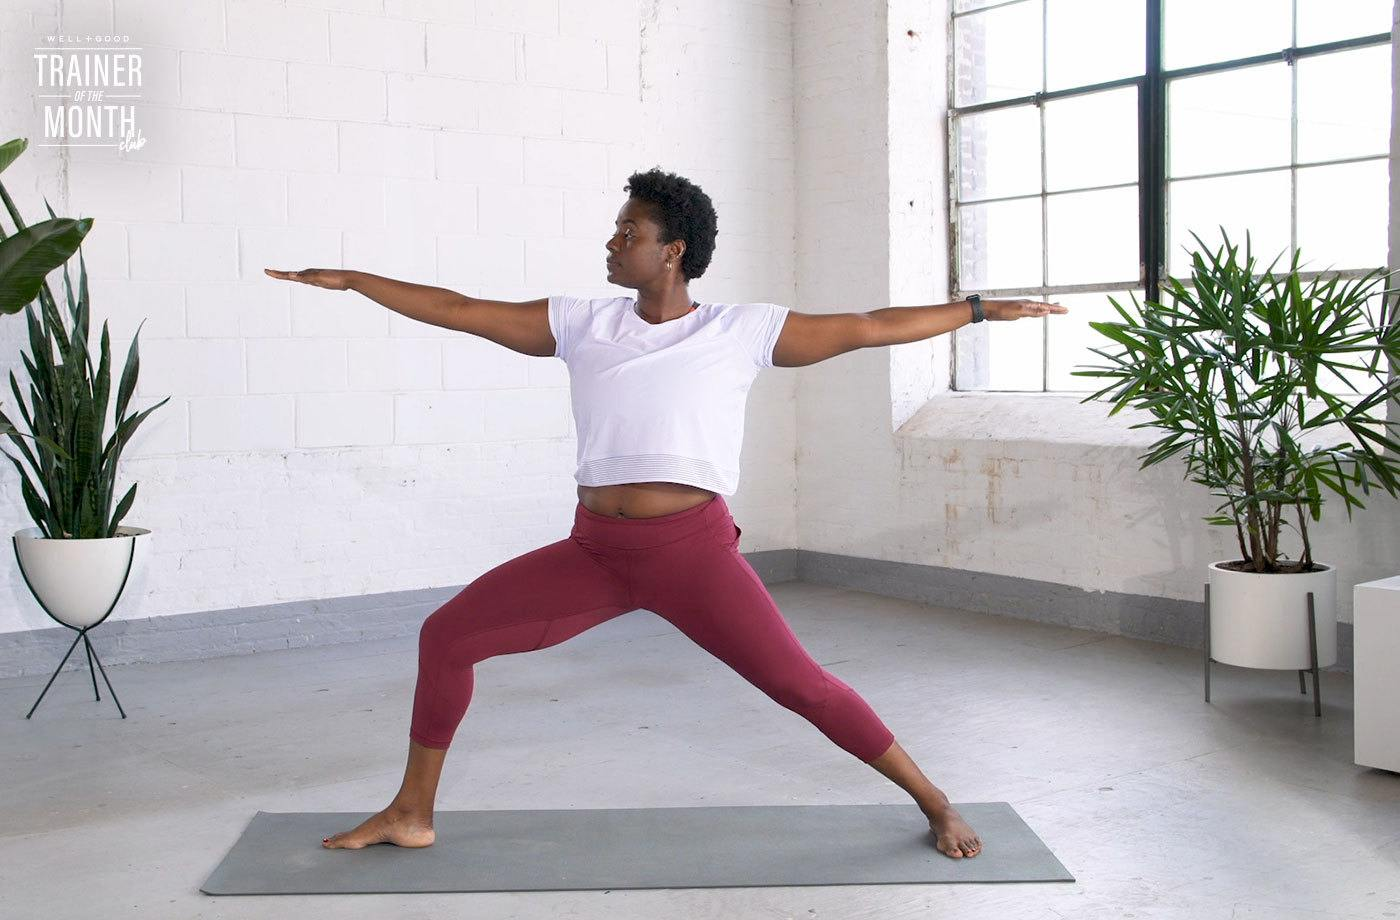 This 7-minute beginner yoga flow will let you ease into your practice